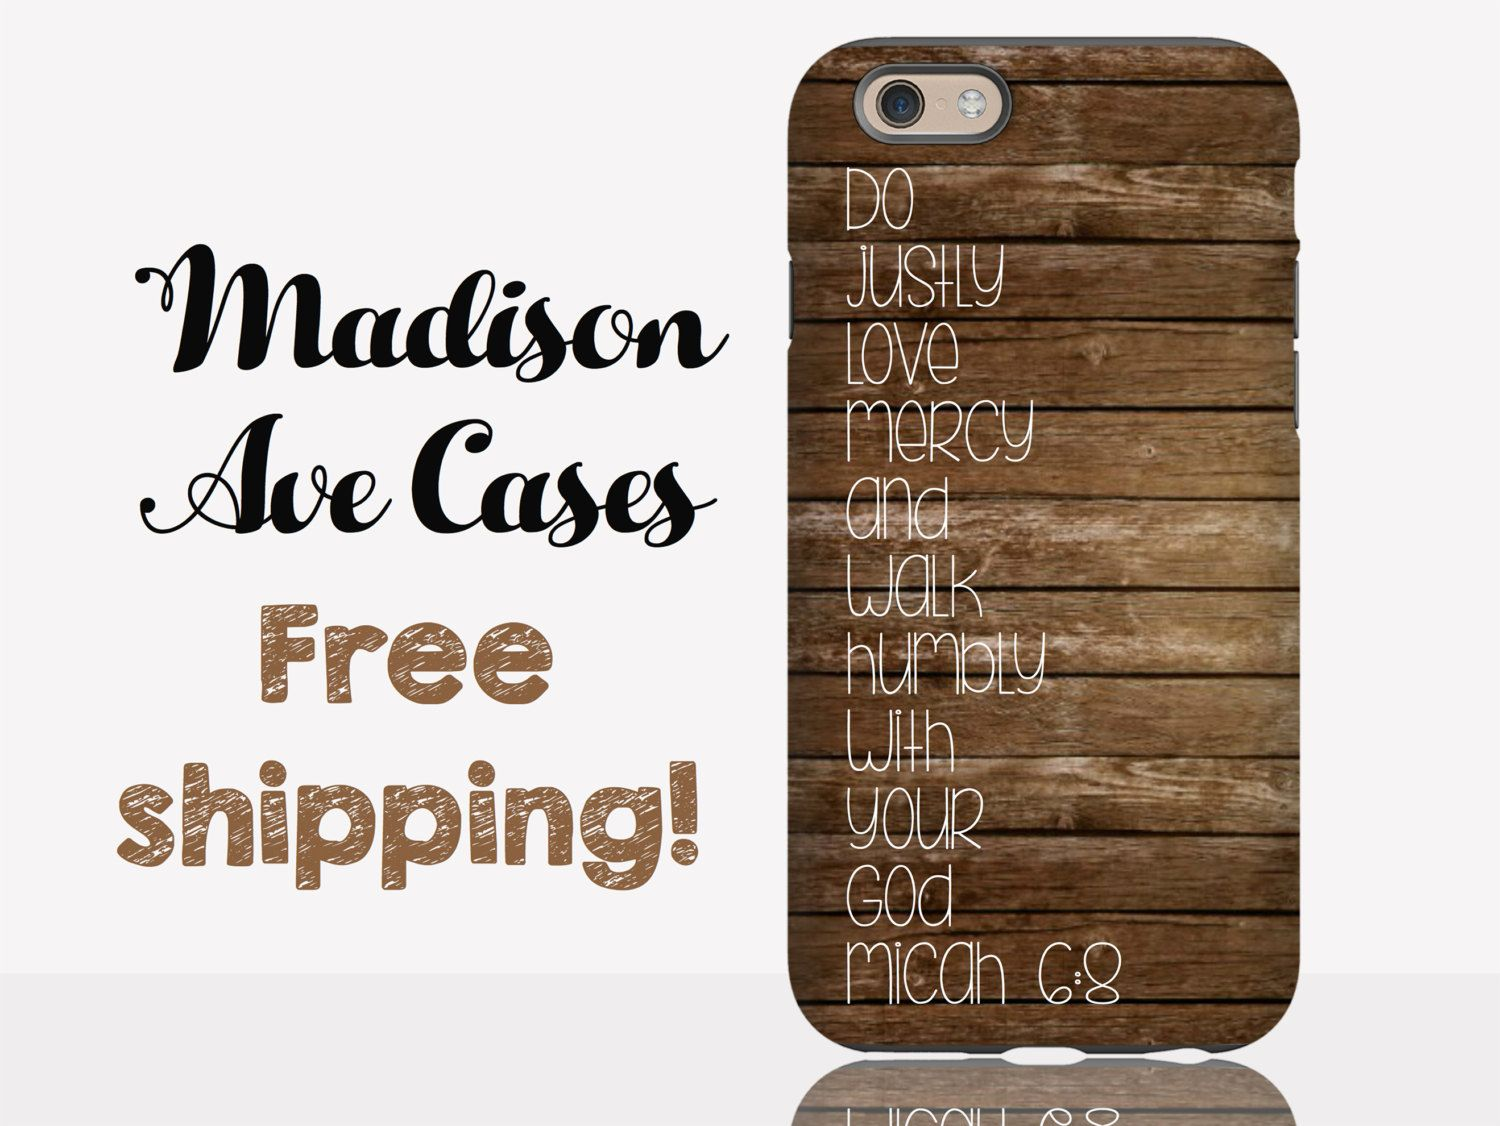 Act justly love mercy walk humbly with your god micah 68 phone case act justly love mercy walk humbly with your god micah christian jesus girl bible verse wood samsung galaxy iphone 5 6 7 negle Image collections